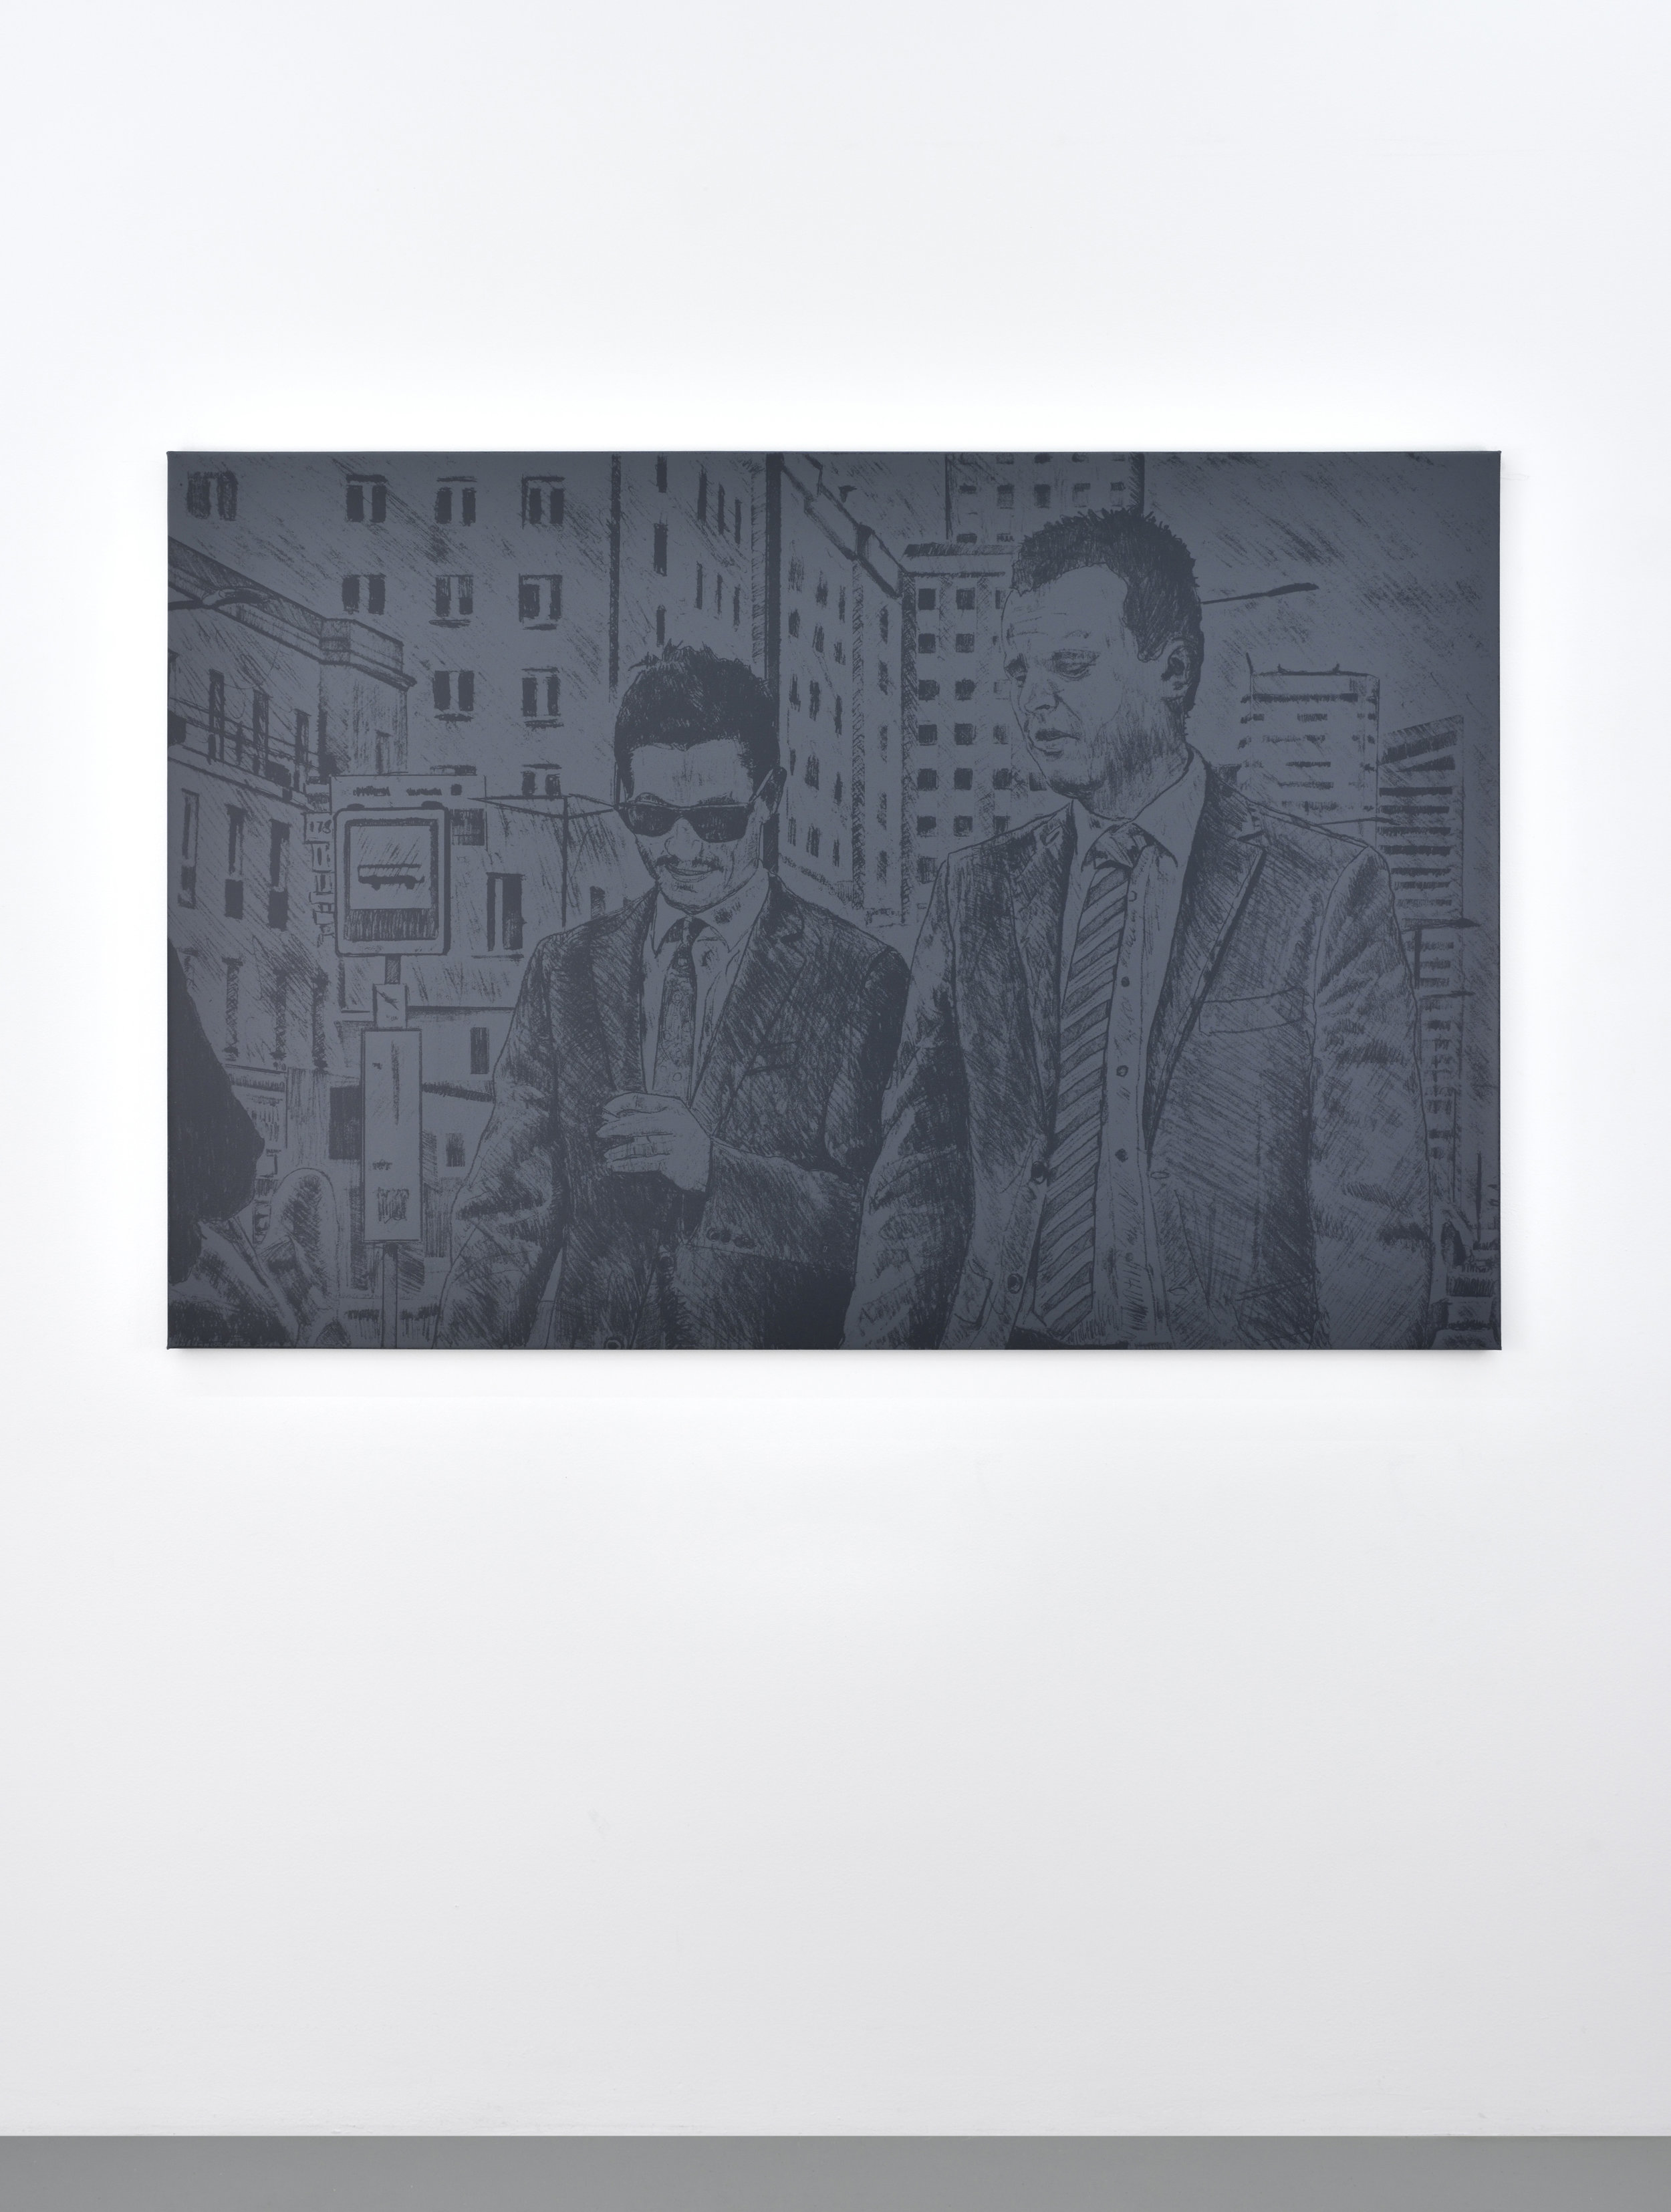 Untitled (two men), 2017 silkscreen on canvas 106,7 x 158,7 cm - 42 x 62 1/2 inches